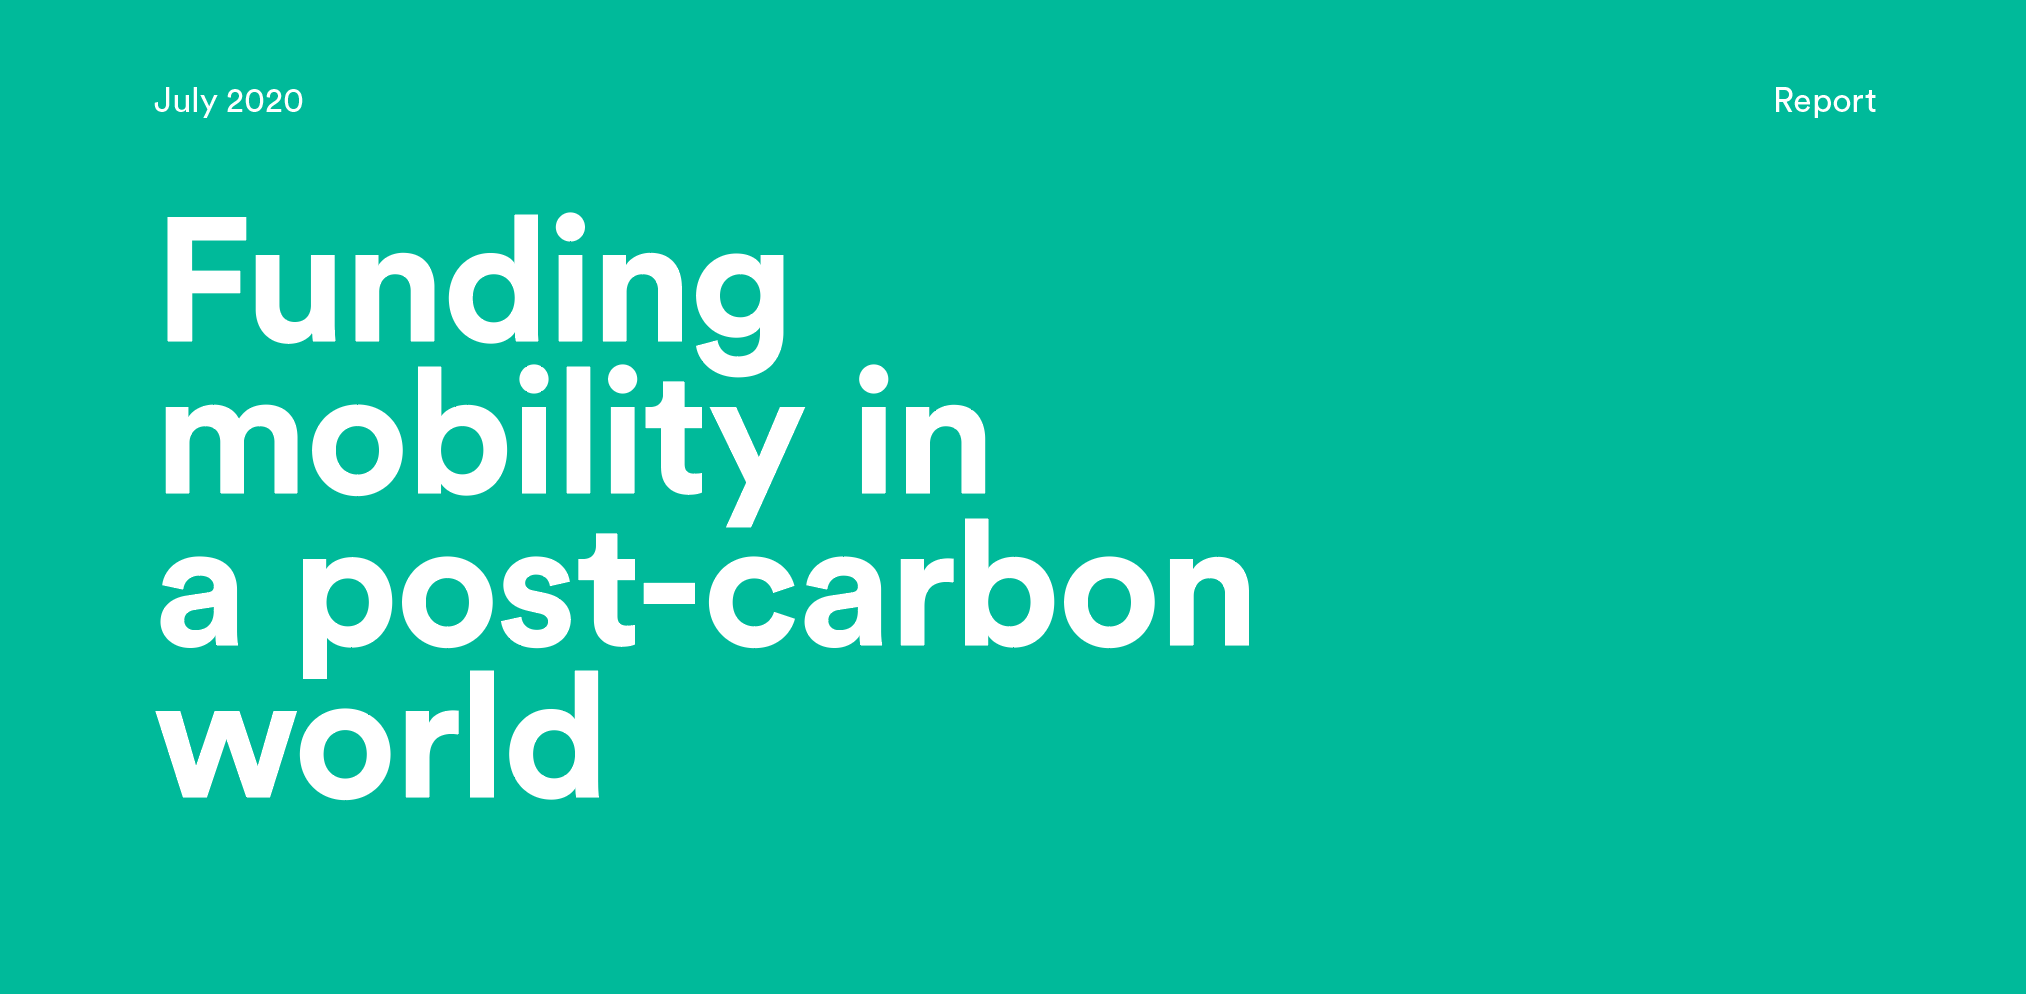 Funding mobility in a post-carbon world - Report